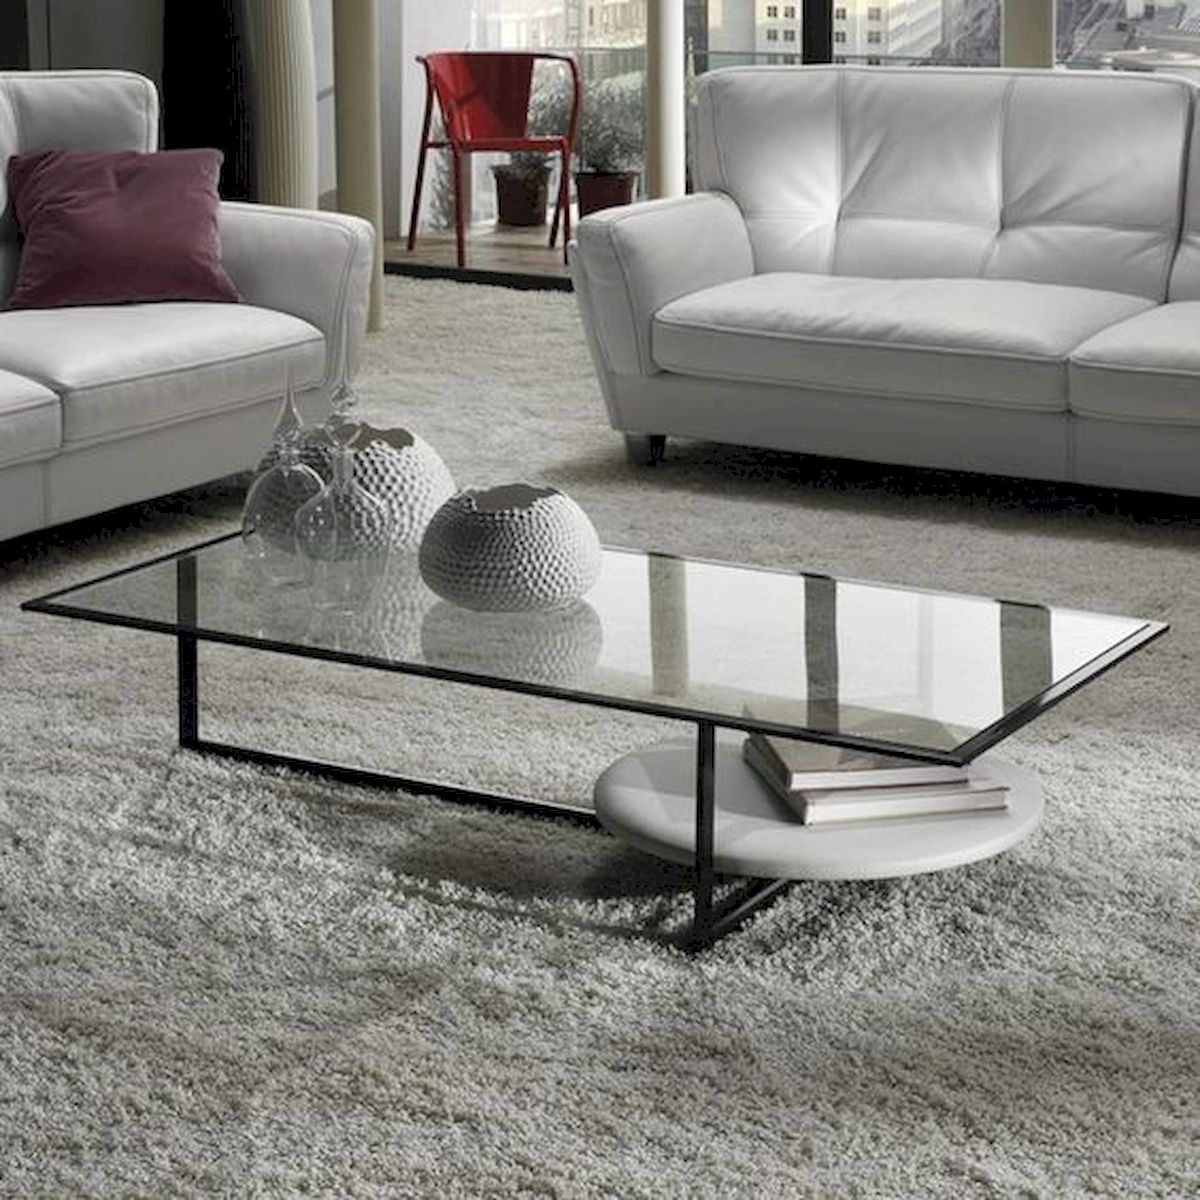 40 Awesome Modern Glass Coffee Table Design Ideas For Your Living Room (28)